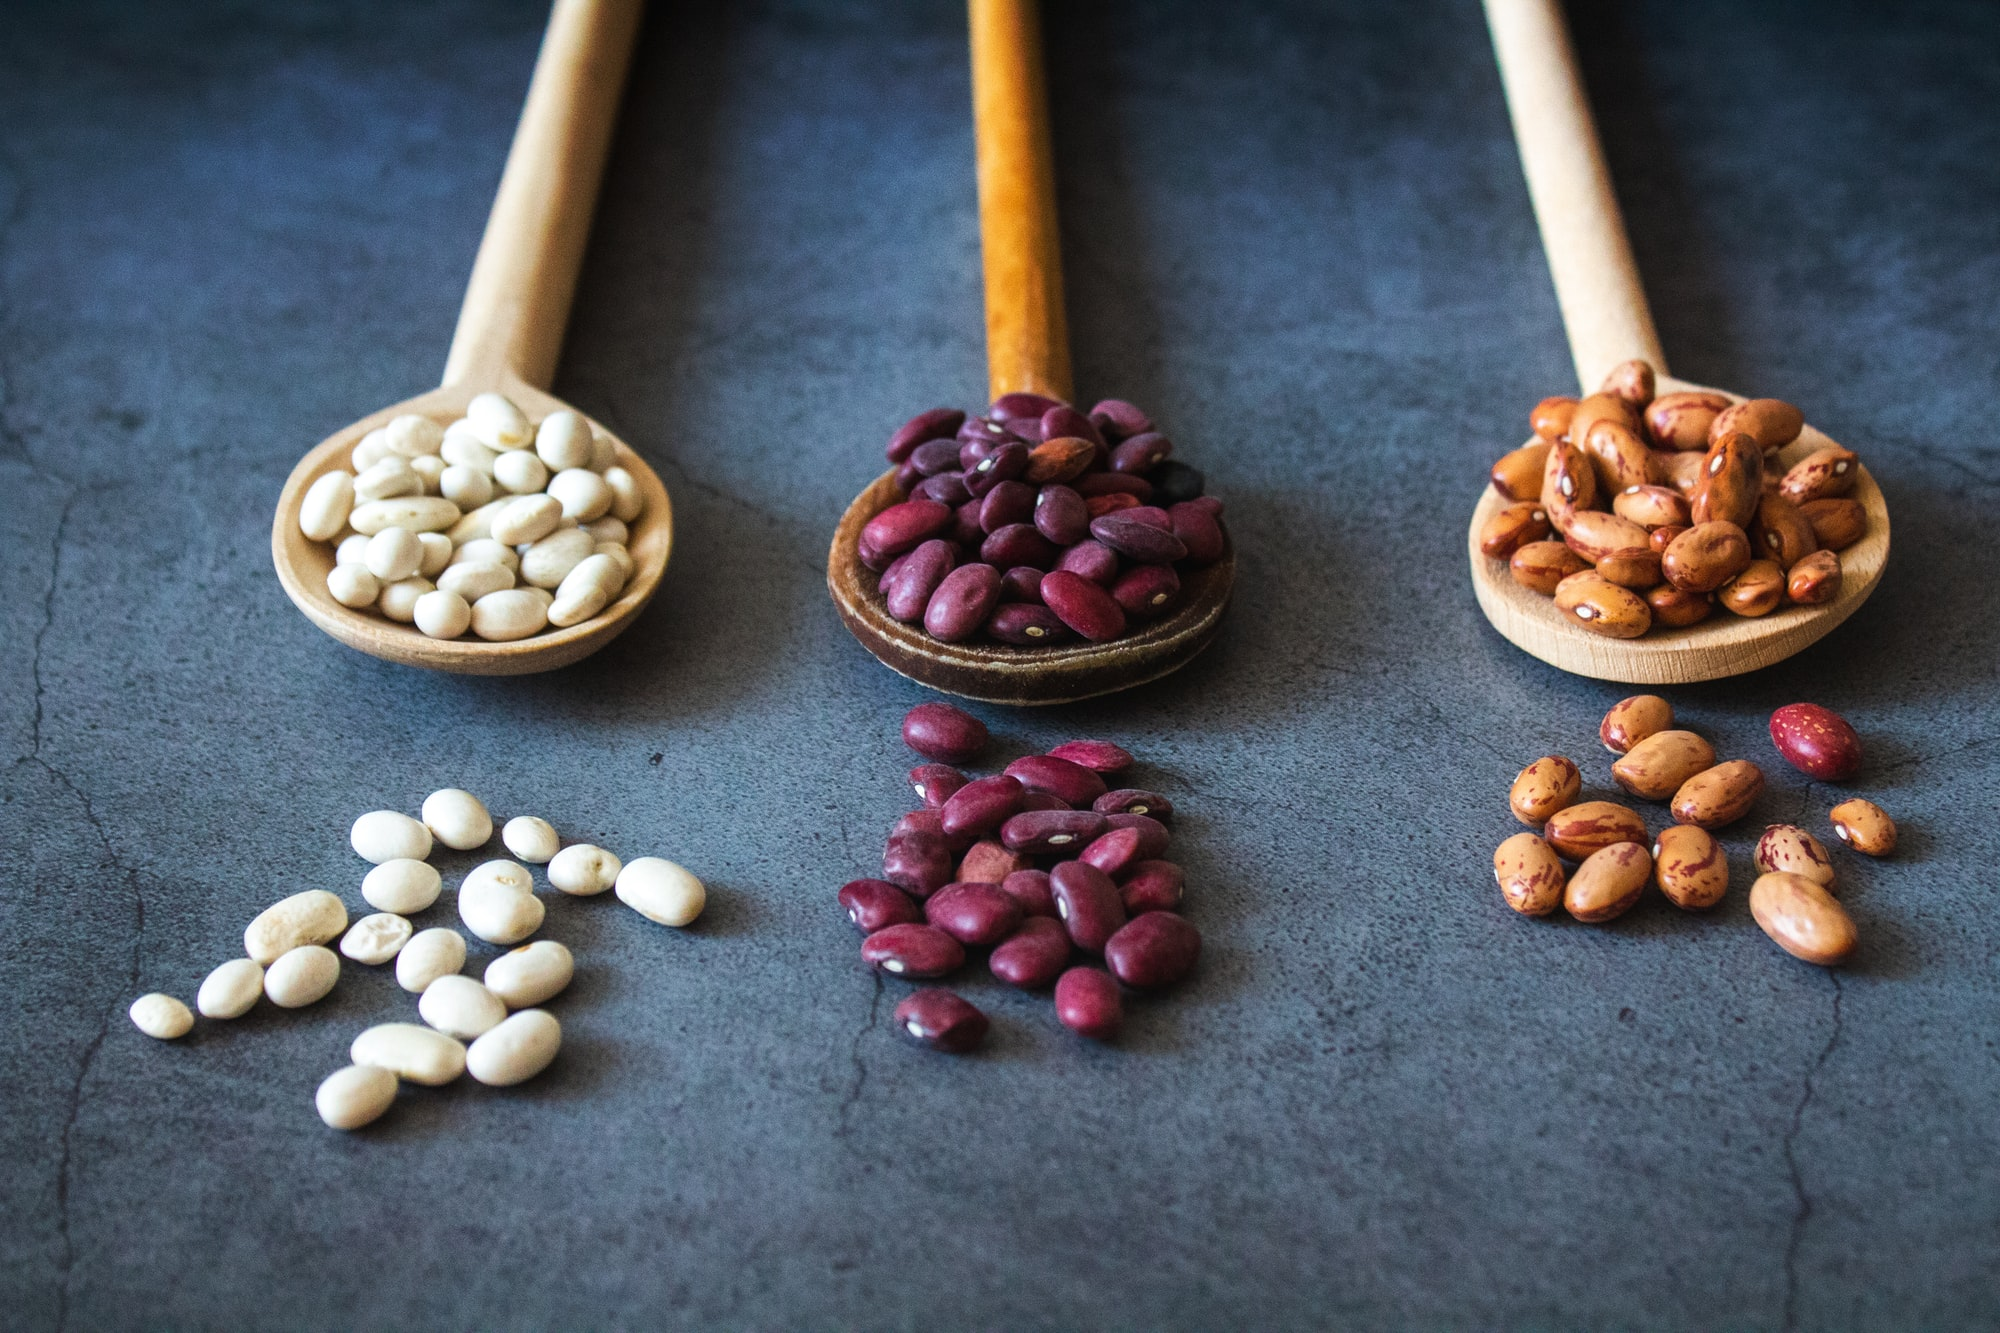 Beans are a common cause of excessive wind by Tijana Drndarski for Unsplash.